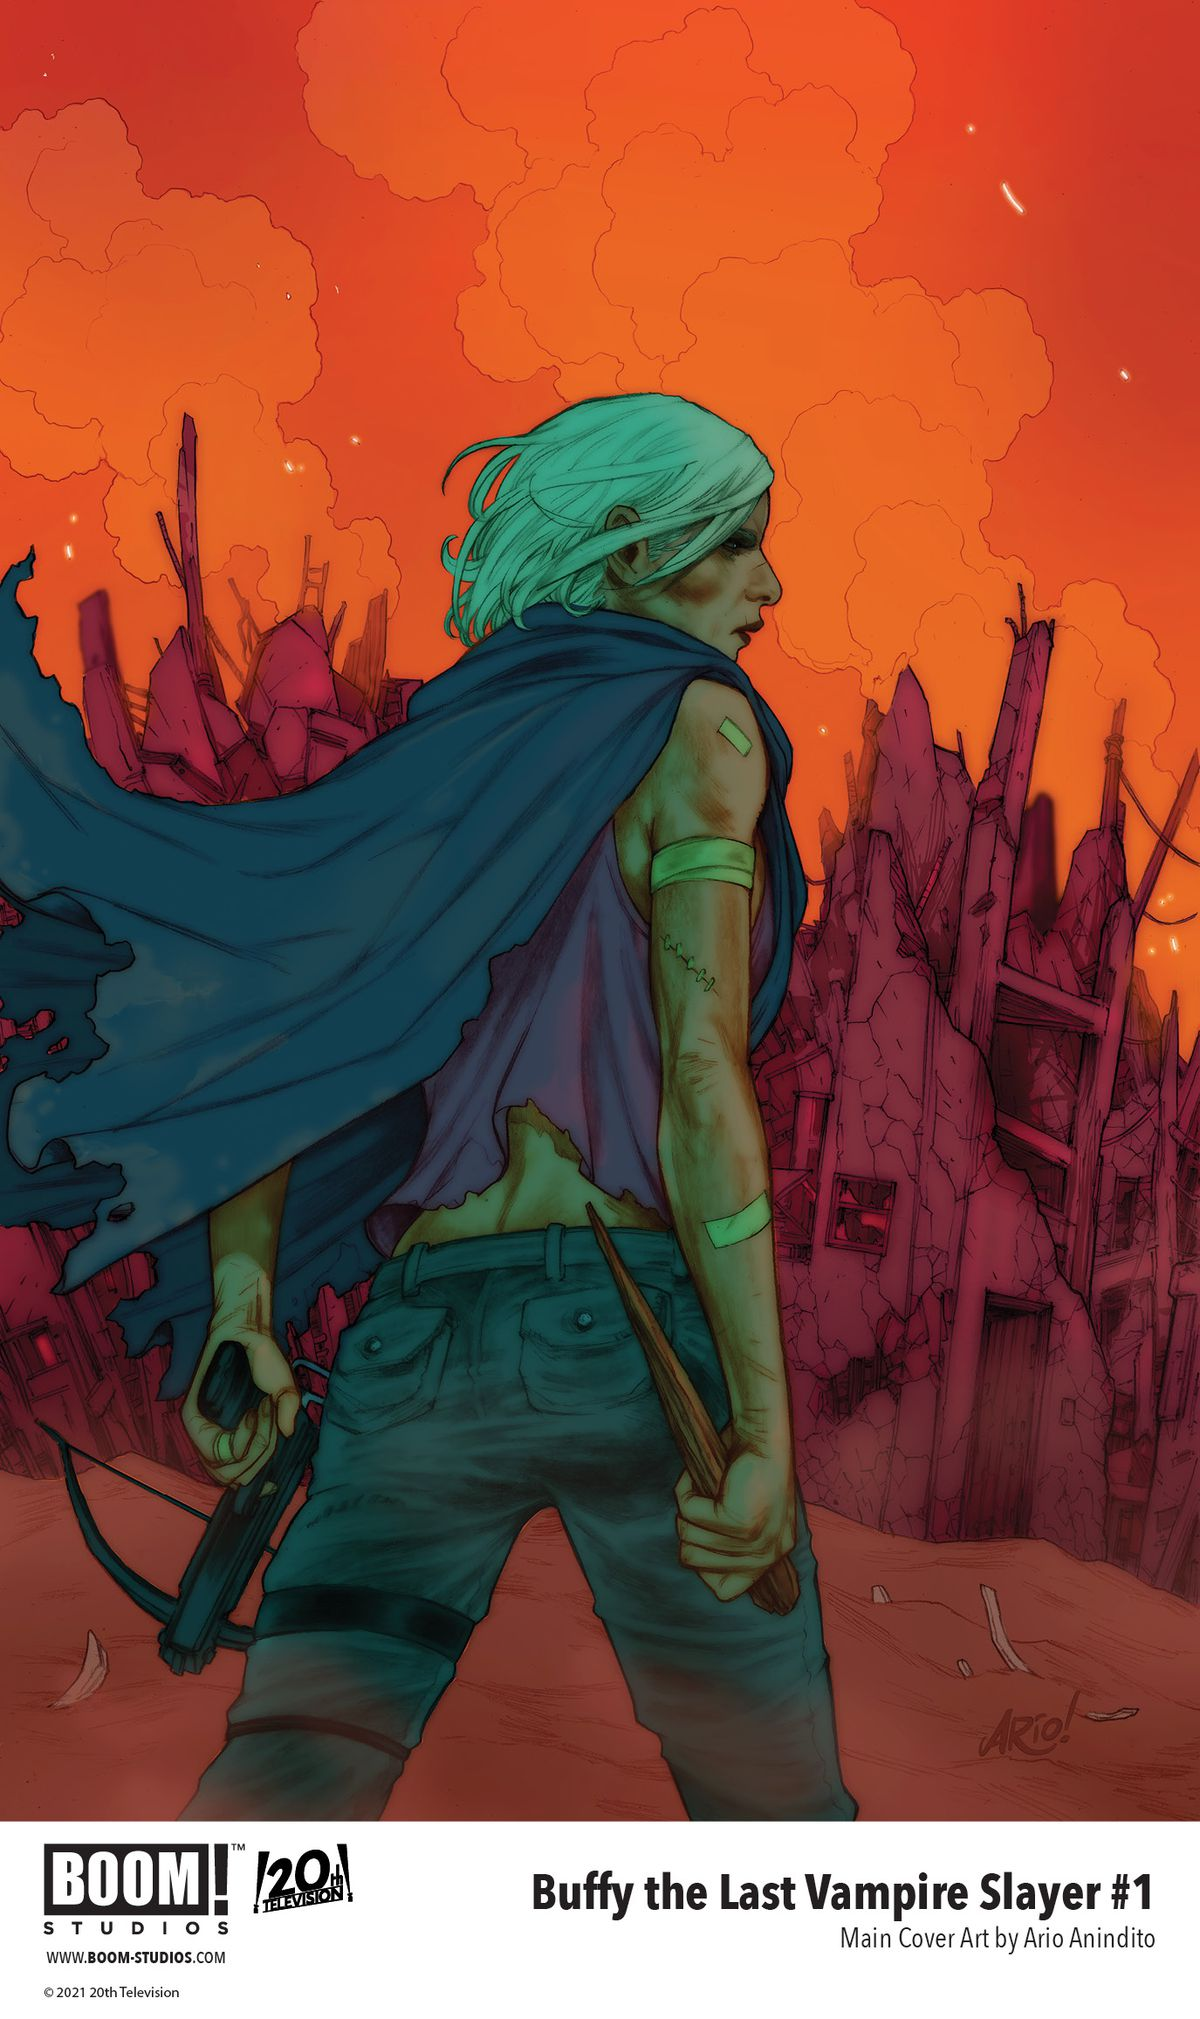 Buffy The Last Vampire Slayer - cover art for issue #1, which shows an older Buffy Summers with a crossbow and a stake against a red and orange post-apocalyptic background